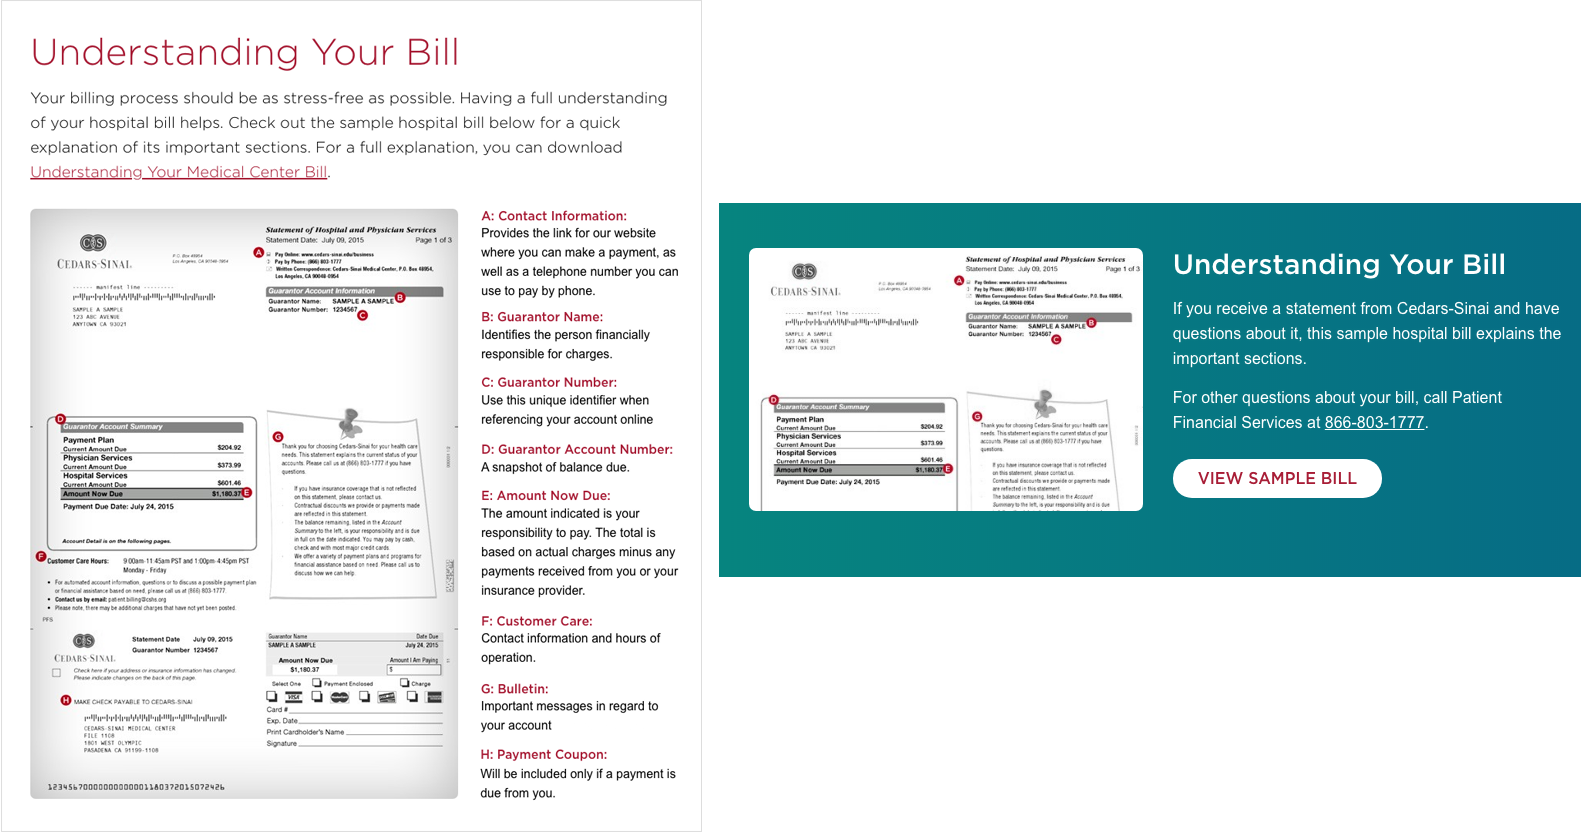 Cedars Sinai uses a sample bill as an infographic to help patients interpret the charges for their medical care